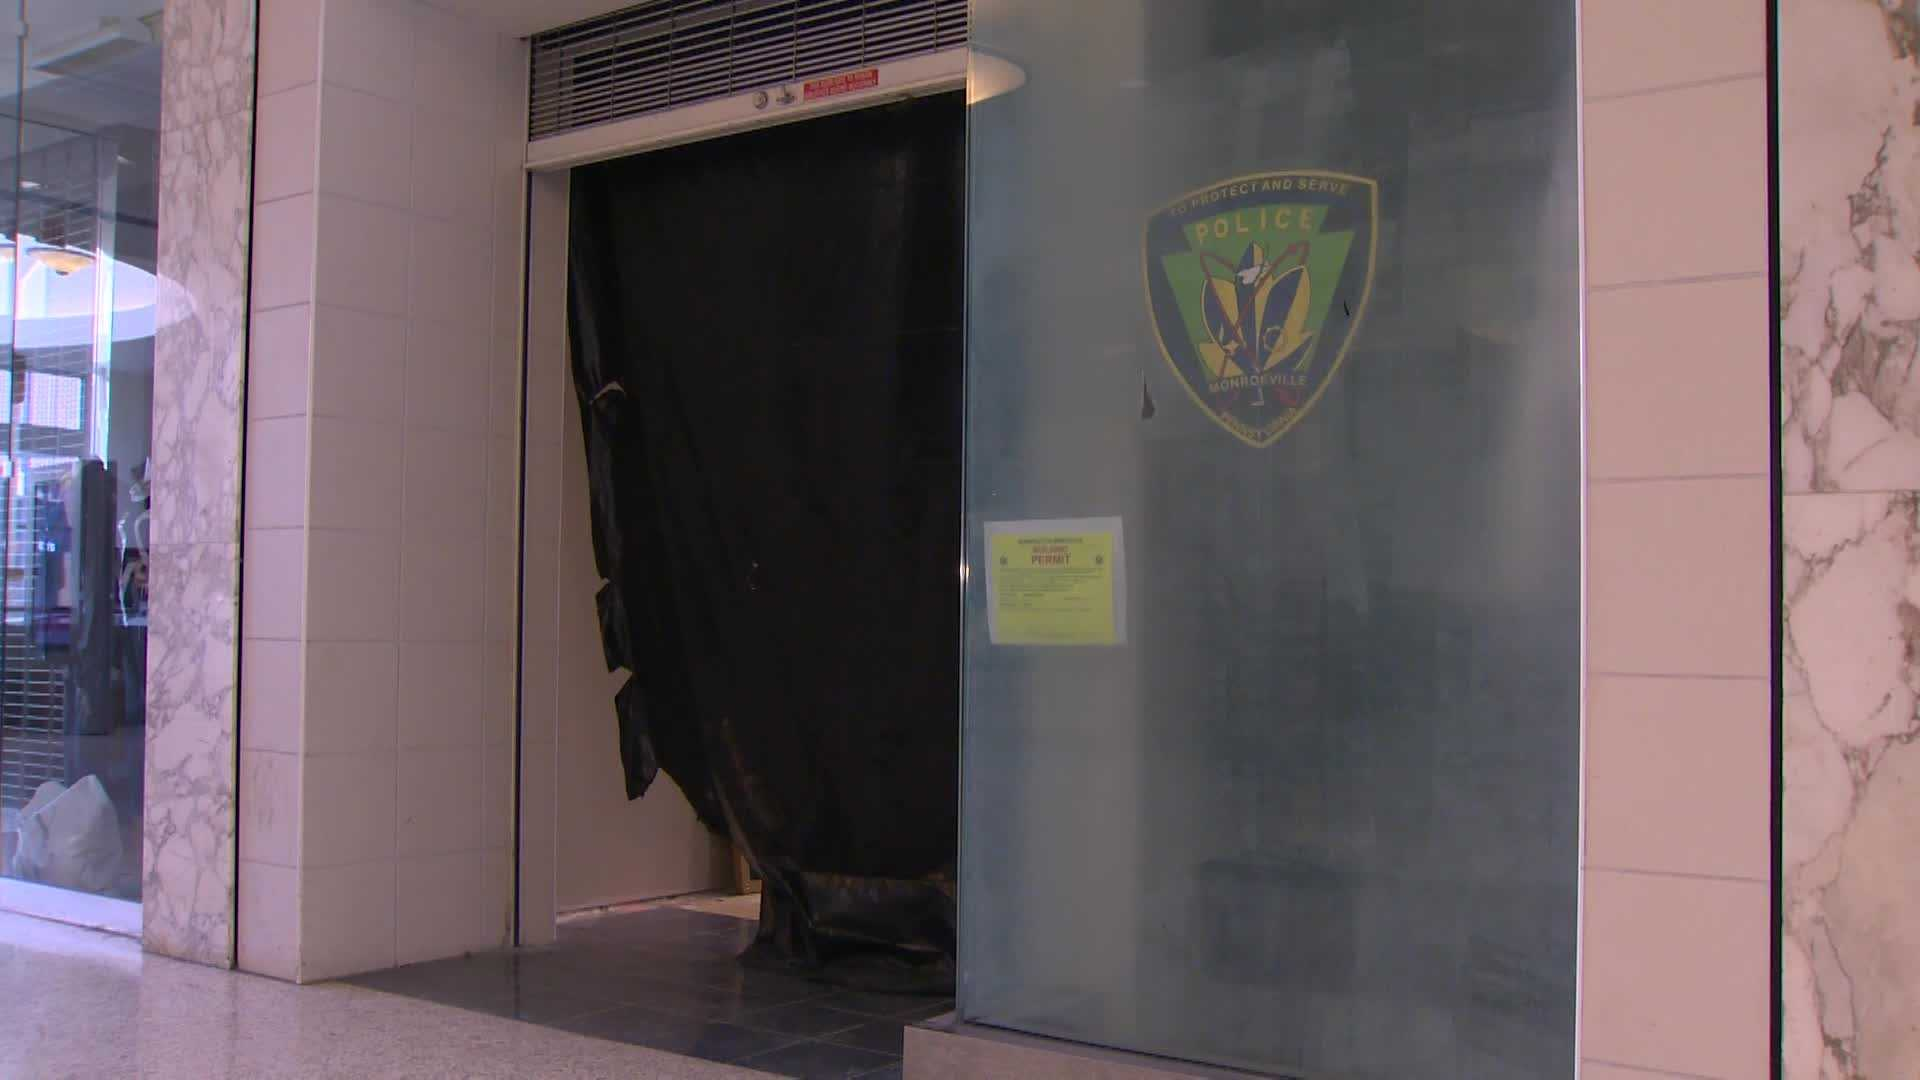 A Monroeville police substation is under construction at the Monroeville Mall.